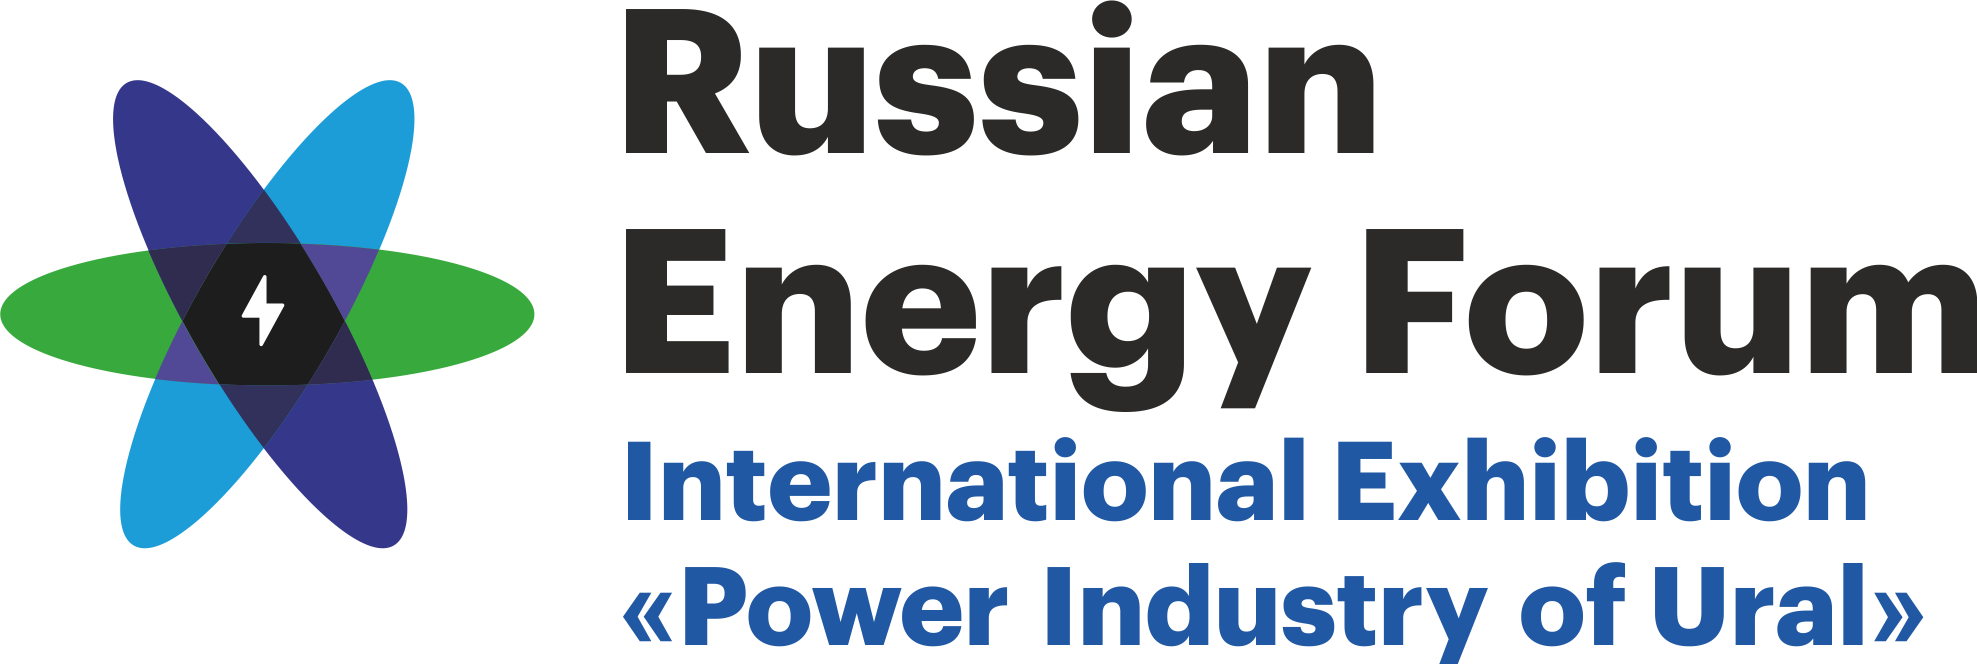 Russian Energy Forum